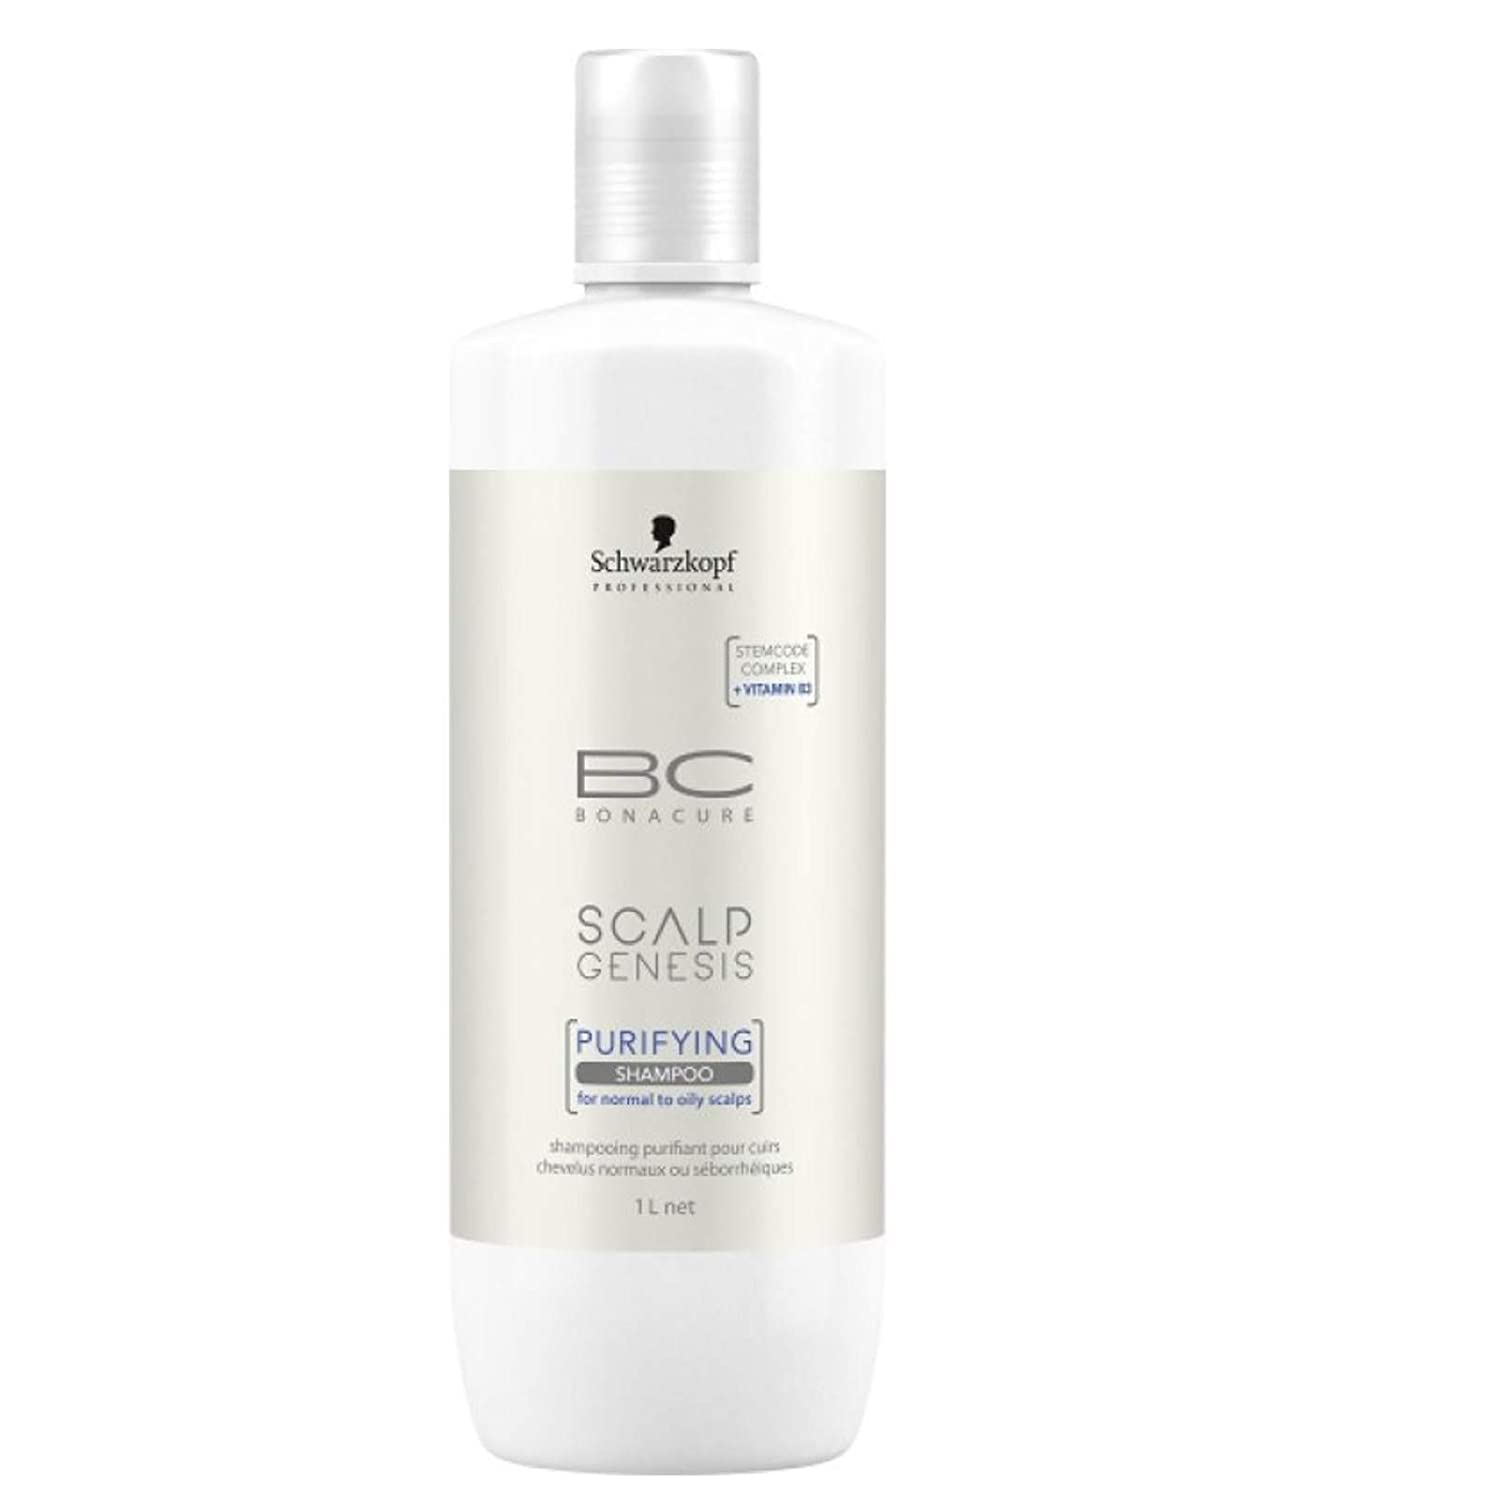 BC Bonacure by Schwarzkopf Scalp Genesis Purifying Shampoo 1000ml